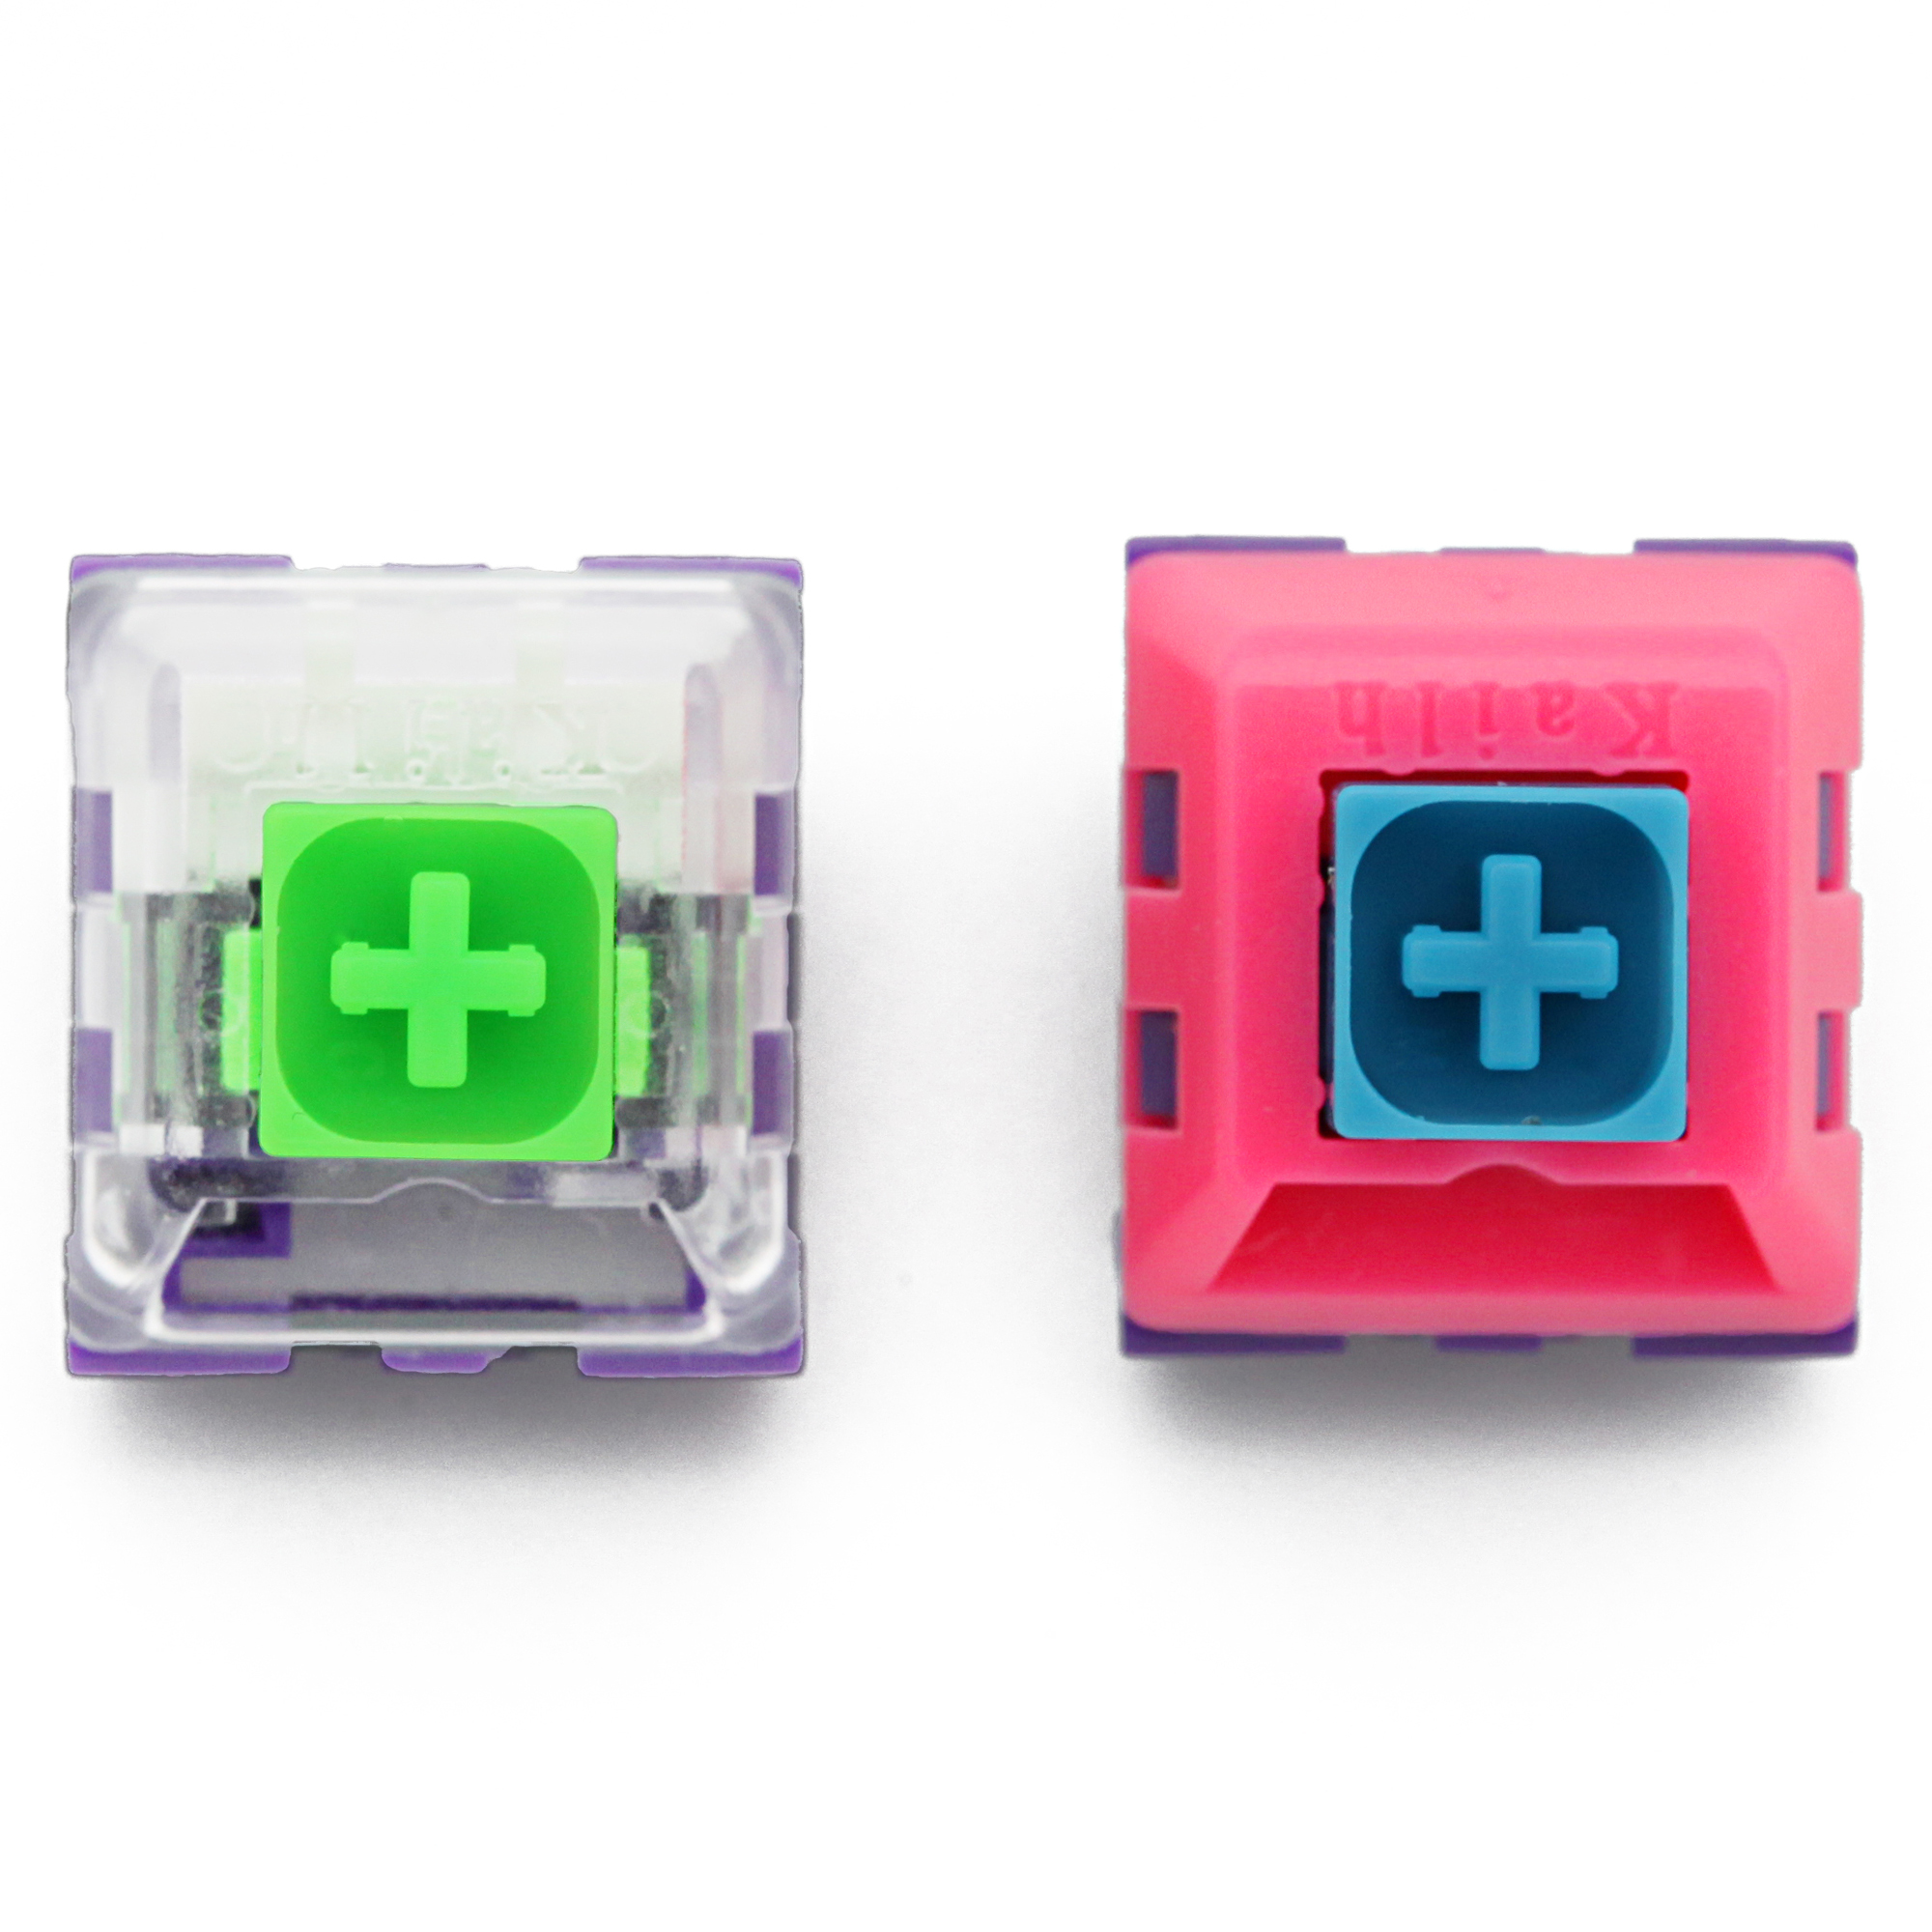 Domikey X Kailh Box Cyber P EVA Tactile Switch SMD Clear MX Switches For Mechanical Keyboard 62g 67g 3pin 50m Clear Housing Punk